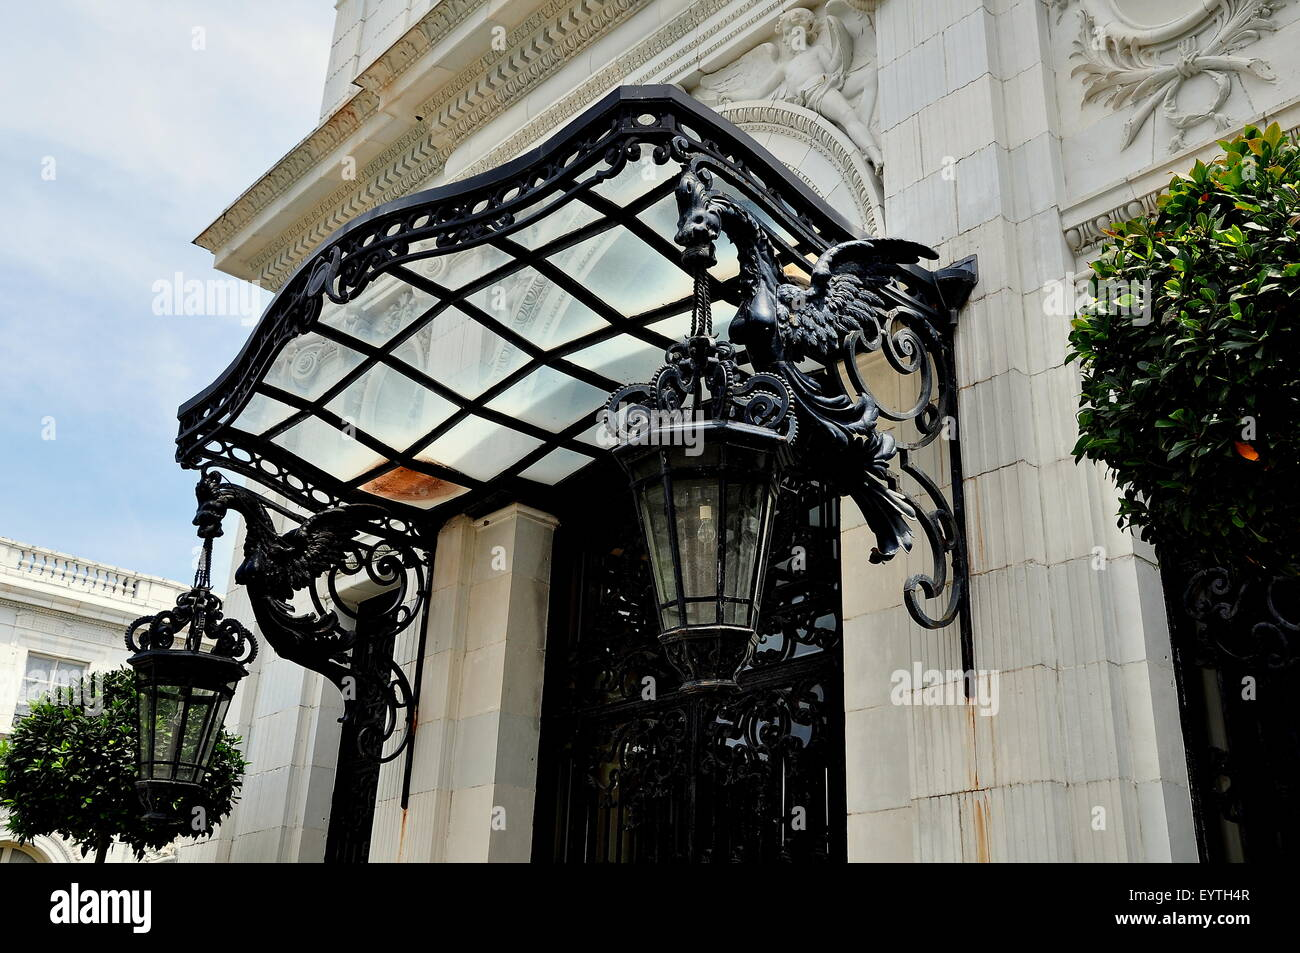 Newport, Rhode Island:  Double dragons holding large lanterns flank the entrance door to 1898-1902 Rosecliff mansion - Stock Image